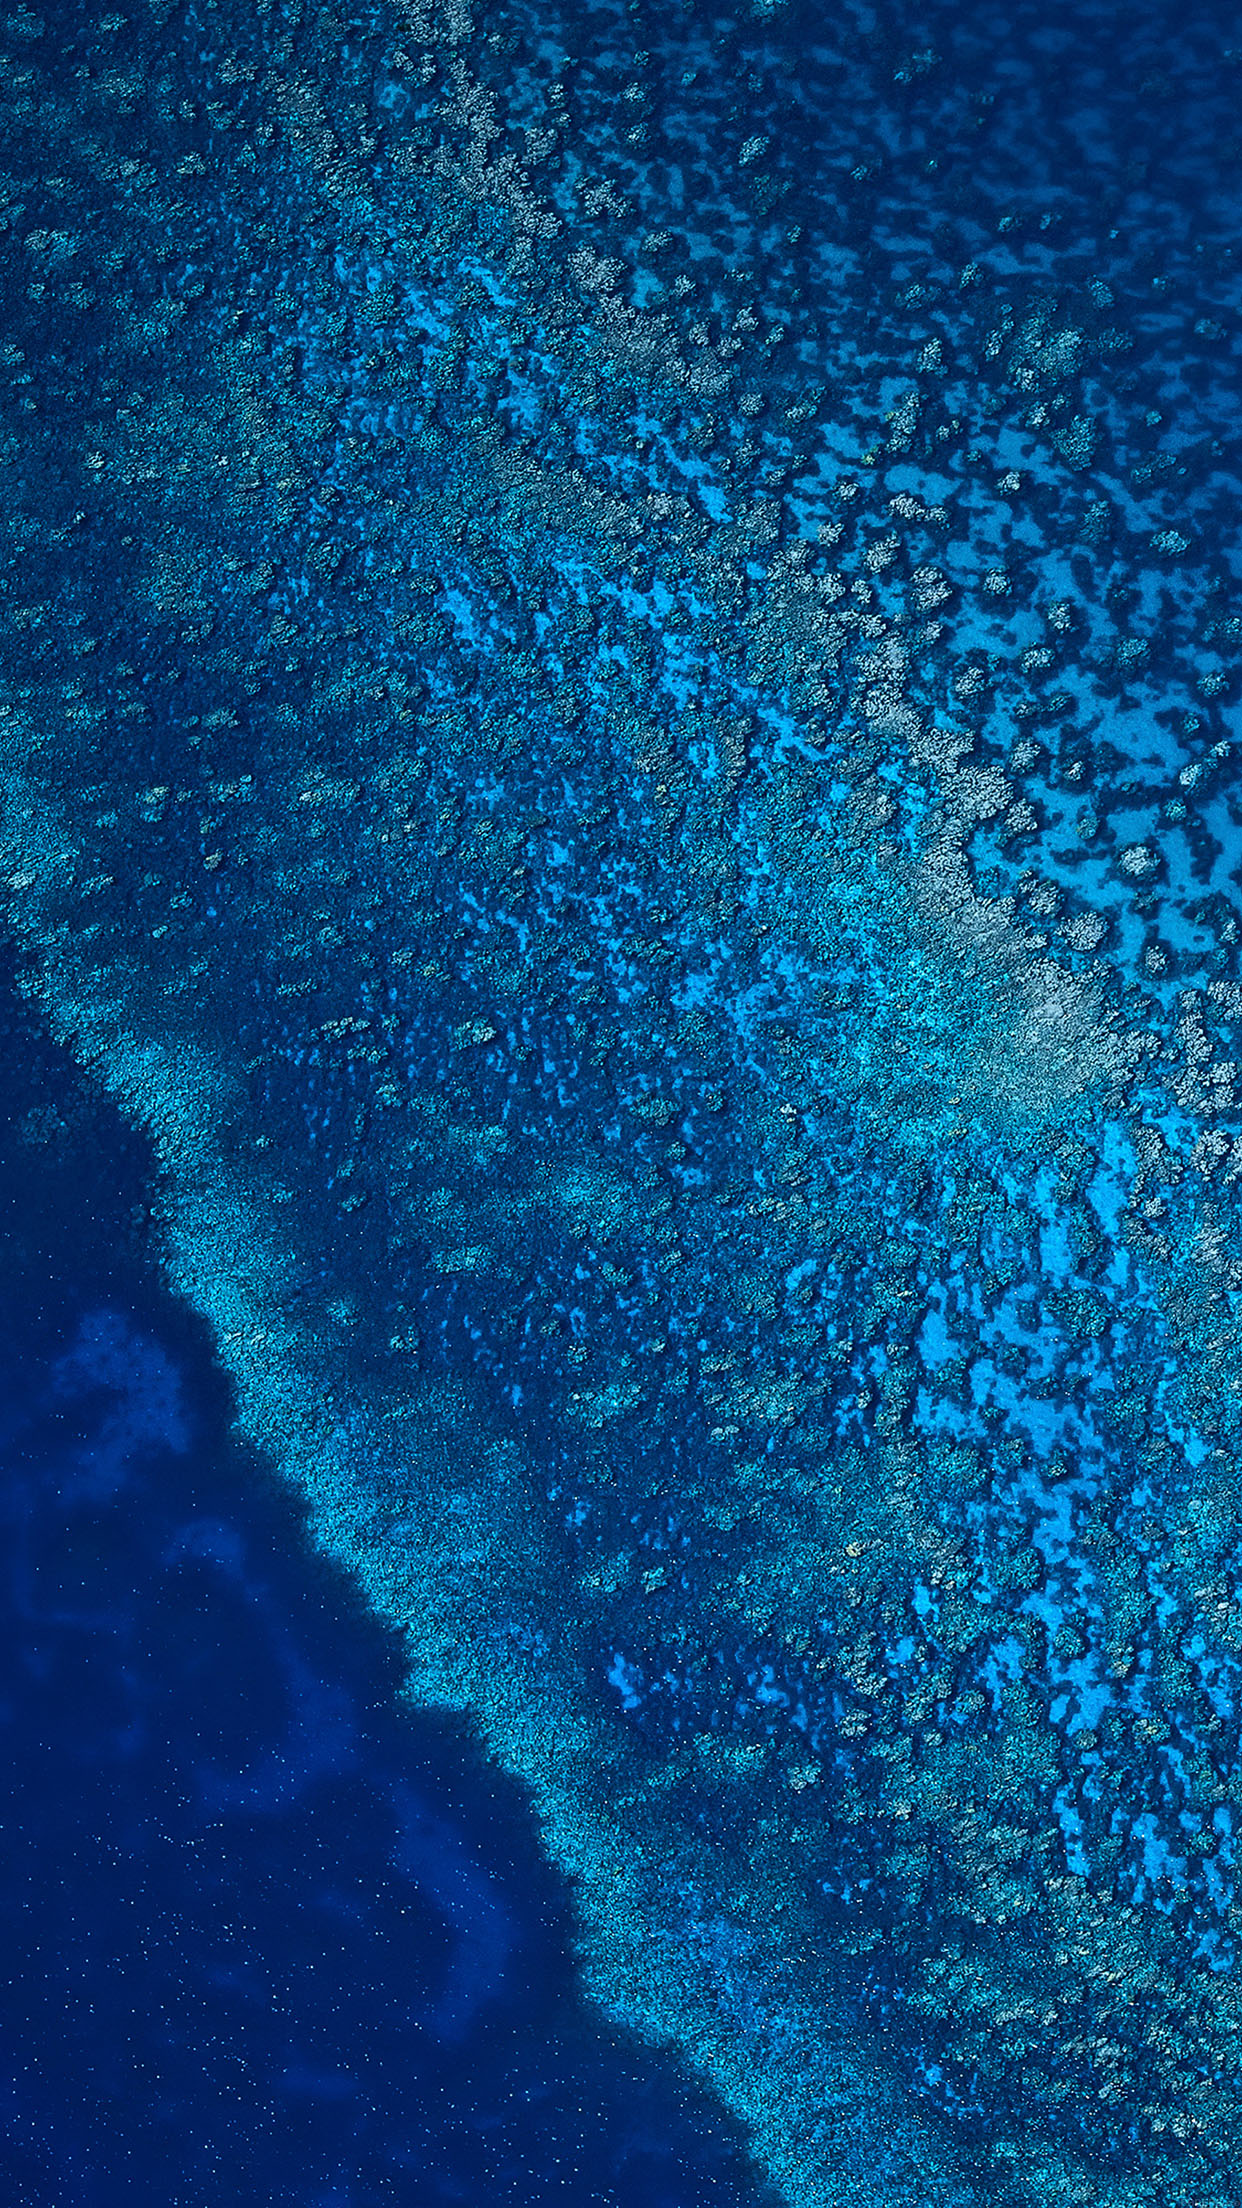 Papers Co Iphone Wallpaper Md21 Wallpaper Blue Sea